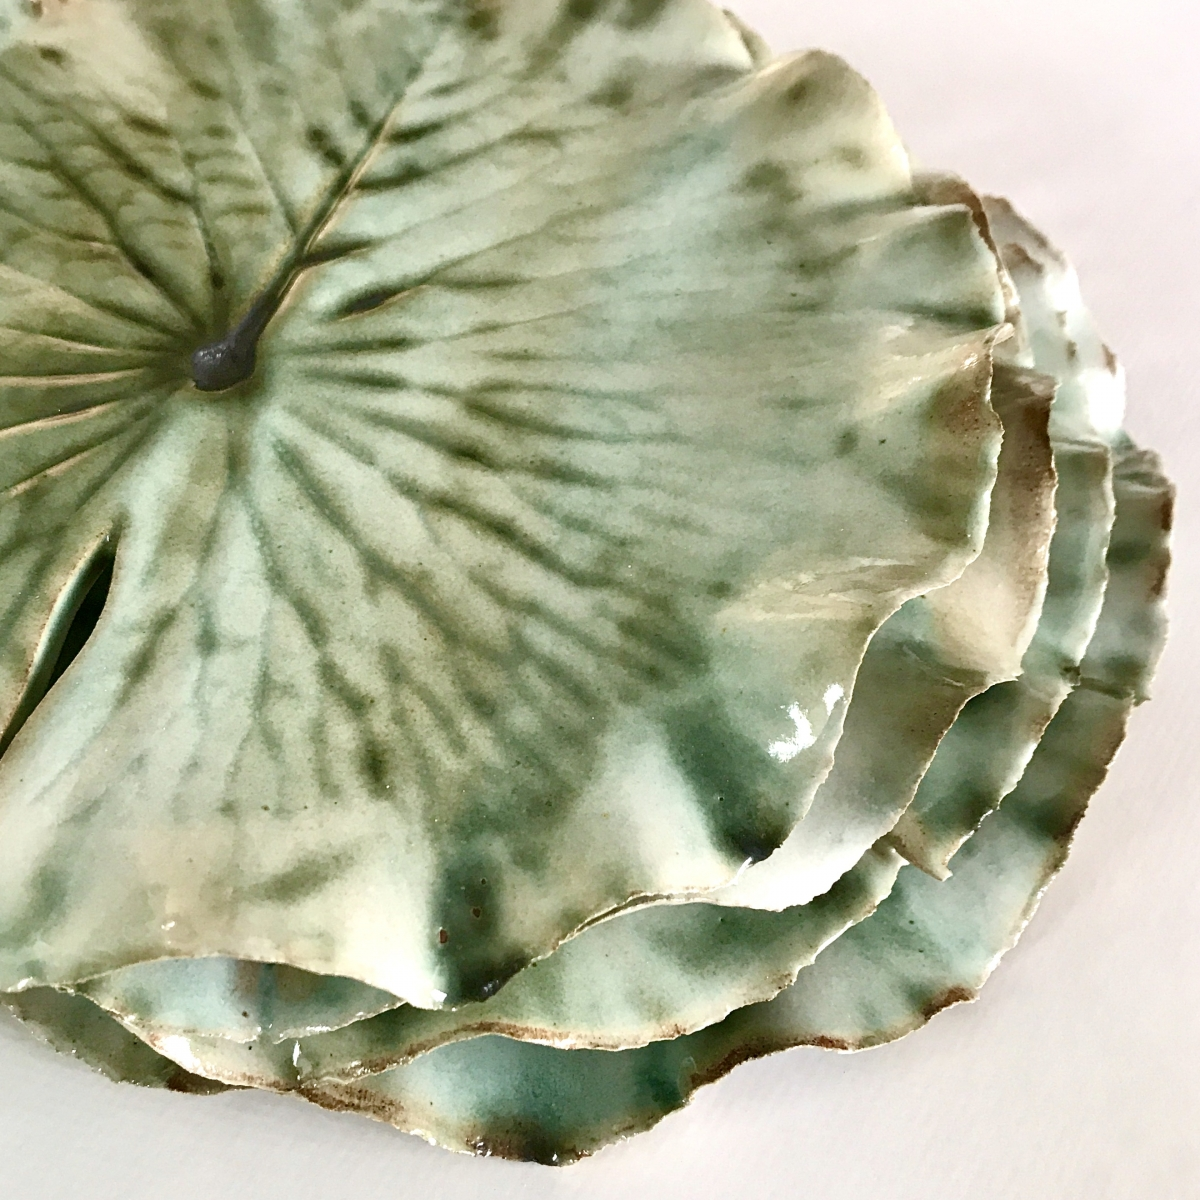 Pond Lily Leaf Side Plate Stack by Sonya Wilkins